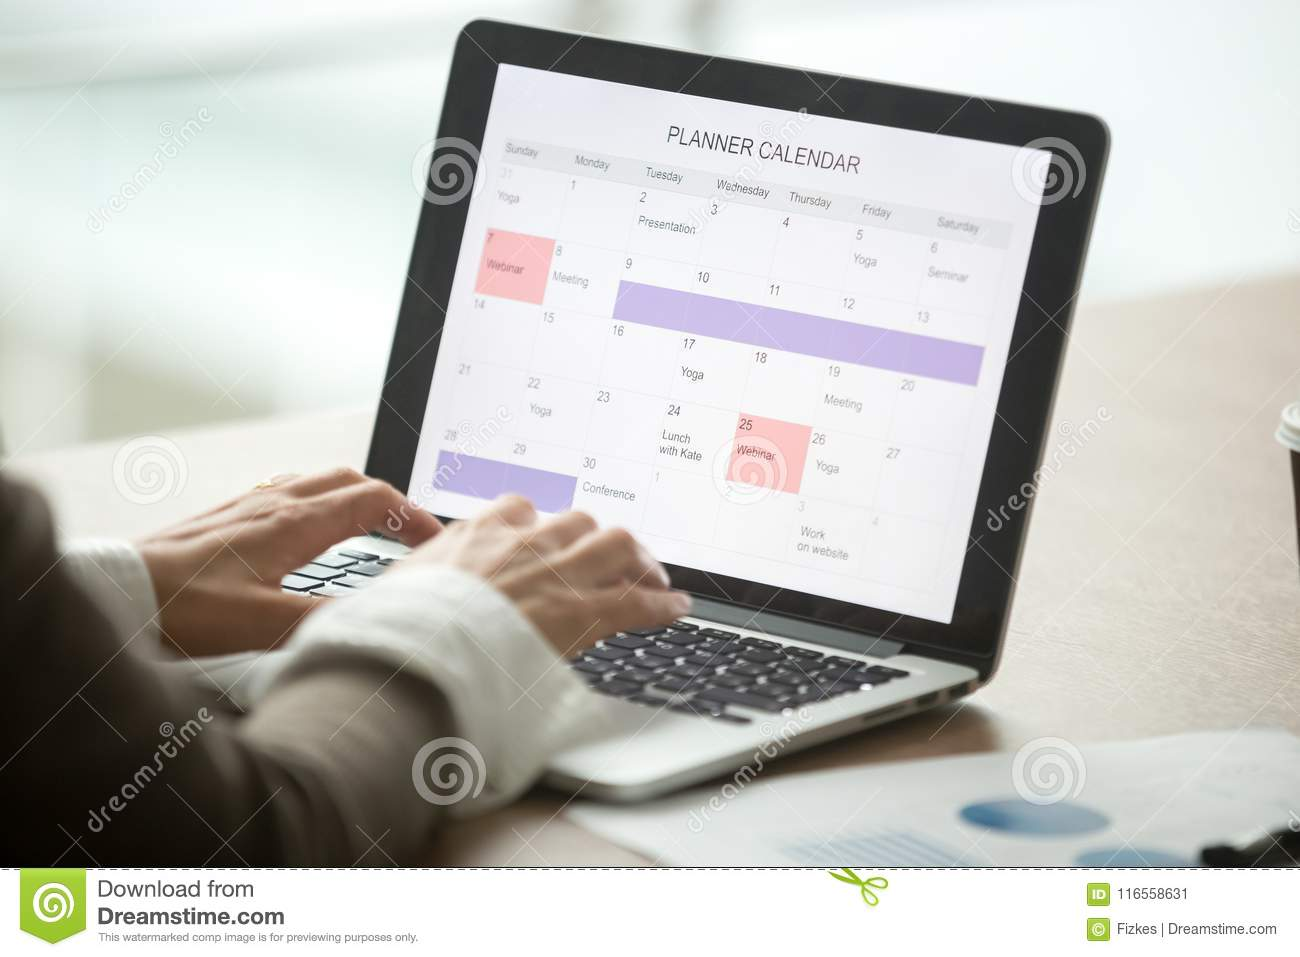 Calendar Planner For Laptop : Businesswoman planning day using digital calendar on